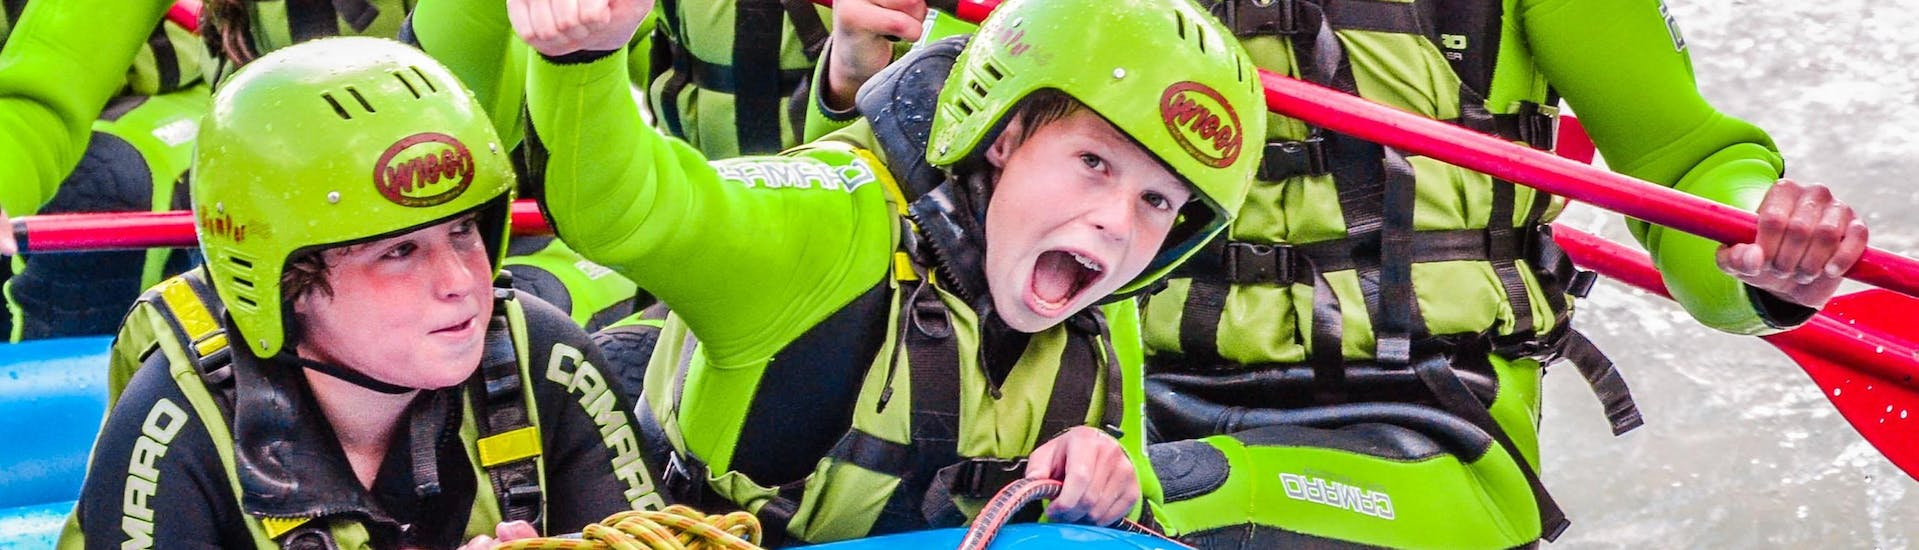 Rafting in the Imster Schlucht for Kids